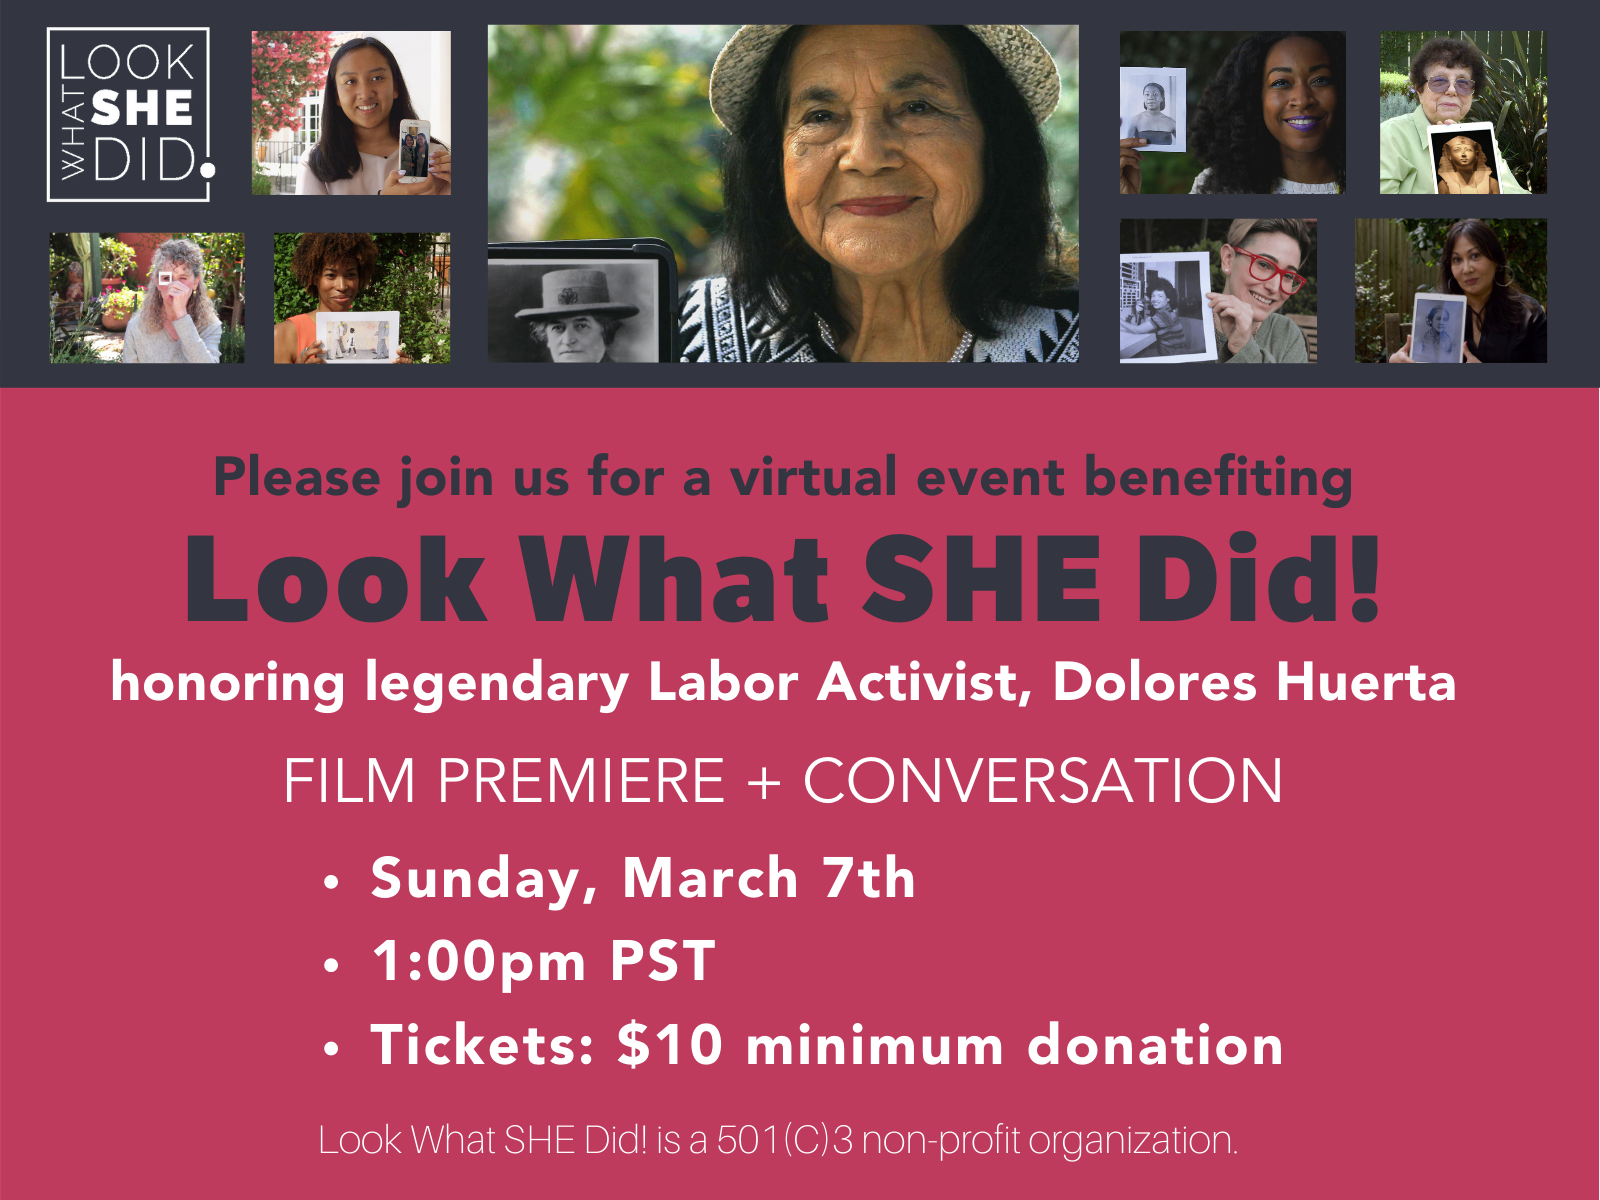 Header Image with Look What SHE Did! March 7 event details and photos of Dolores Huerta and other female storytellers from the Look What SHE Did! film collection.